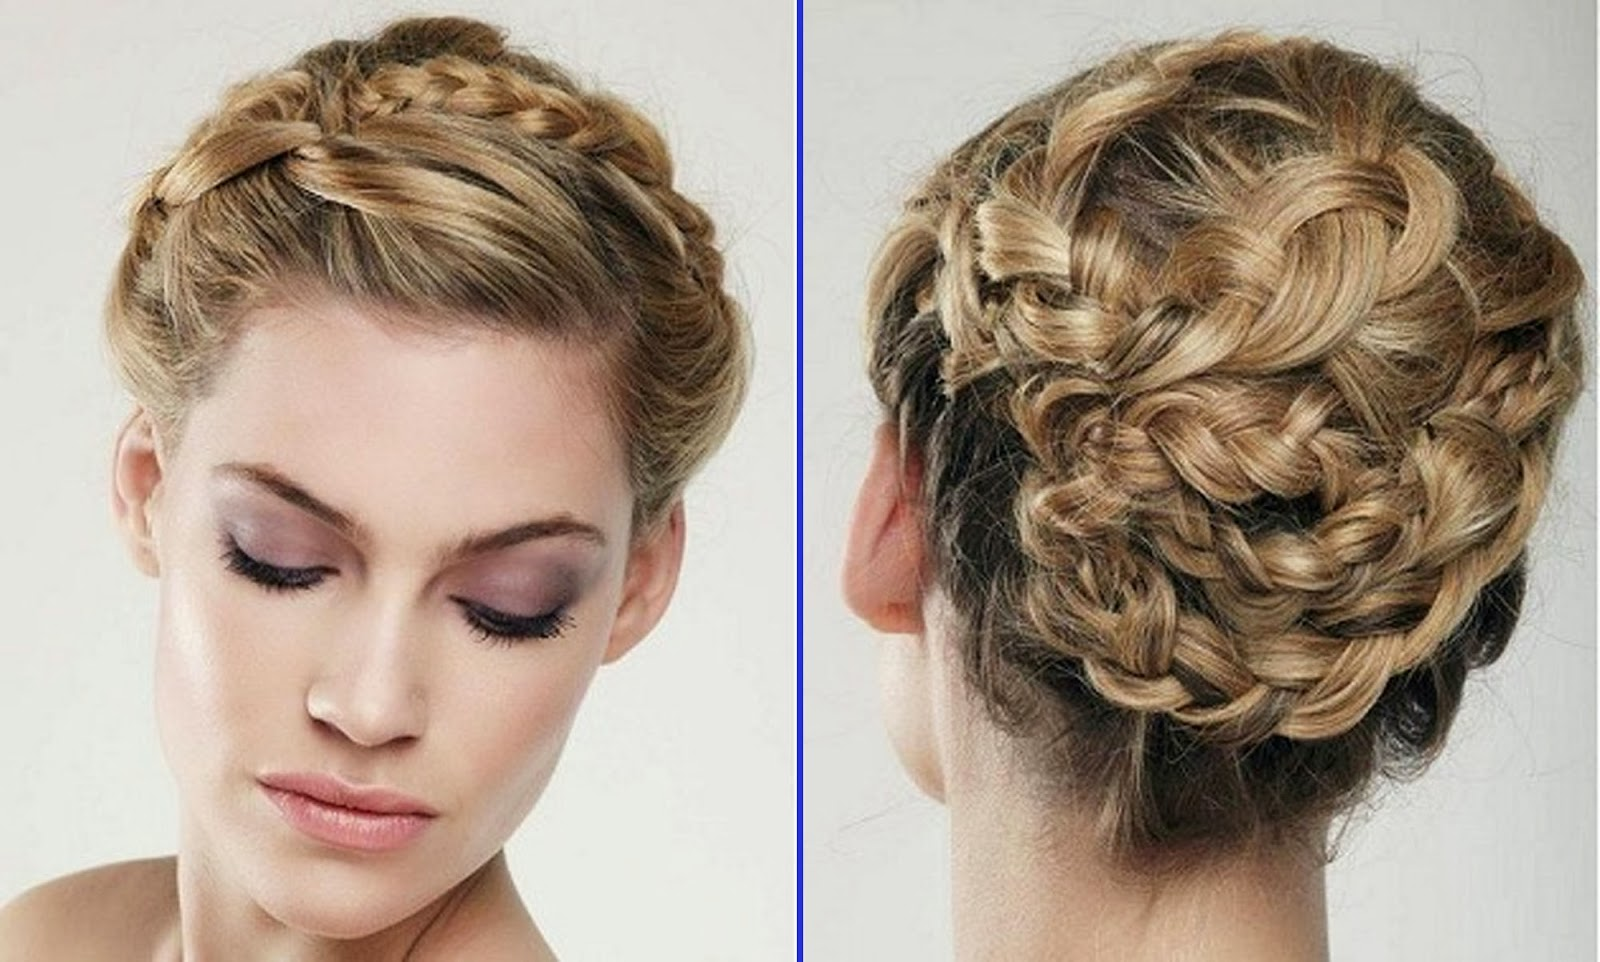 hairstyles for long hair 2013 for weddings